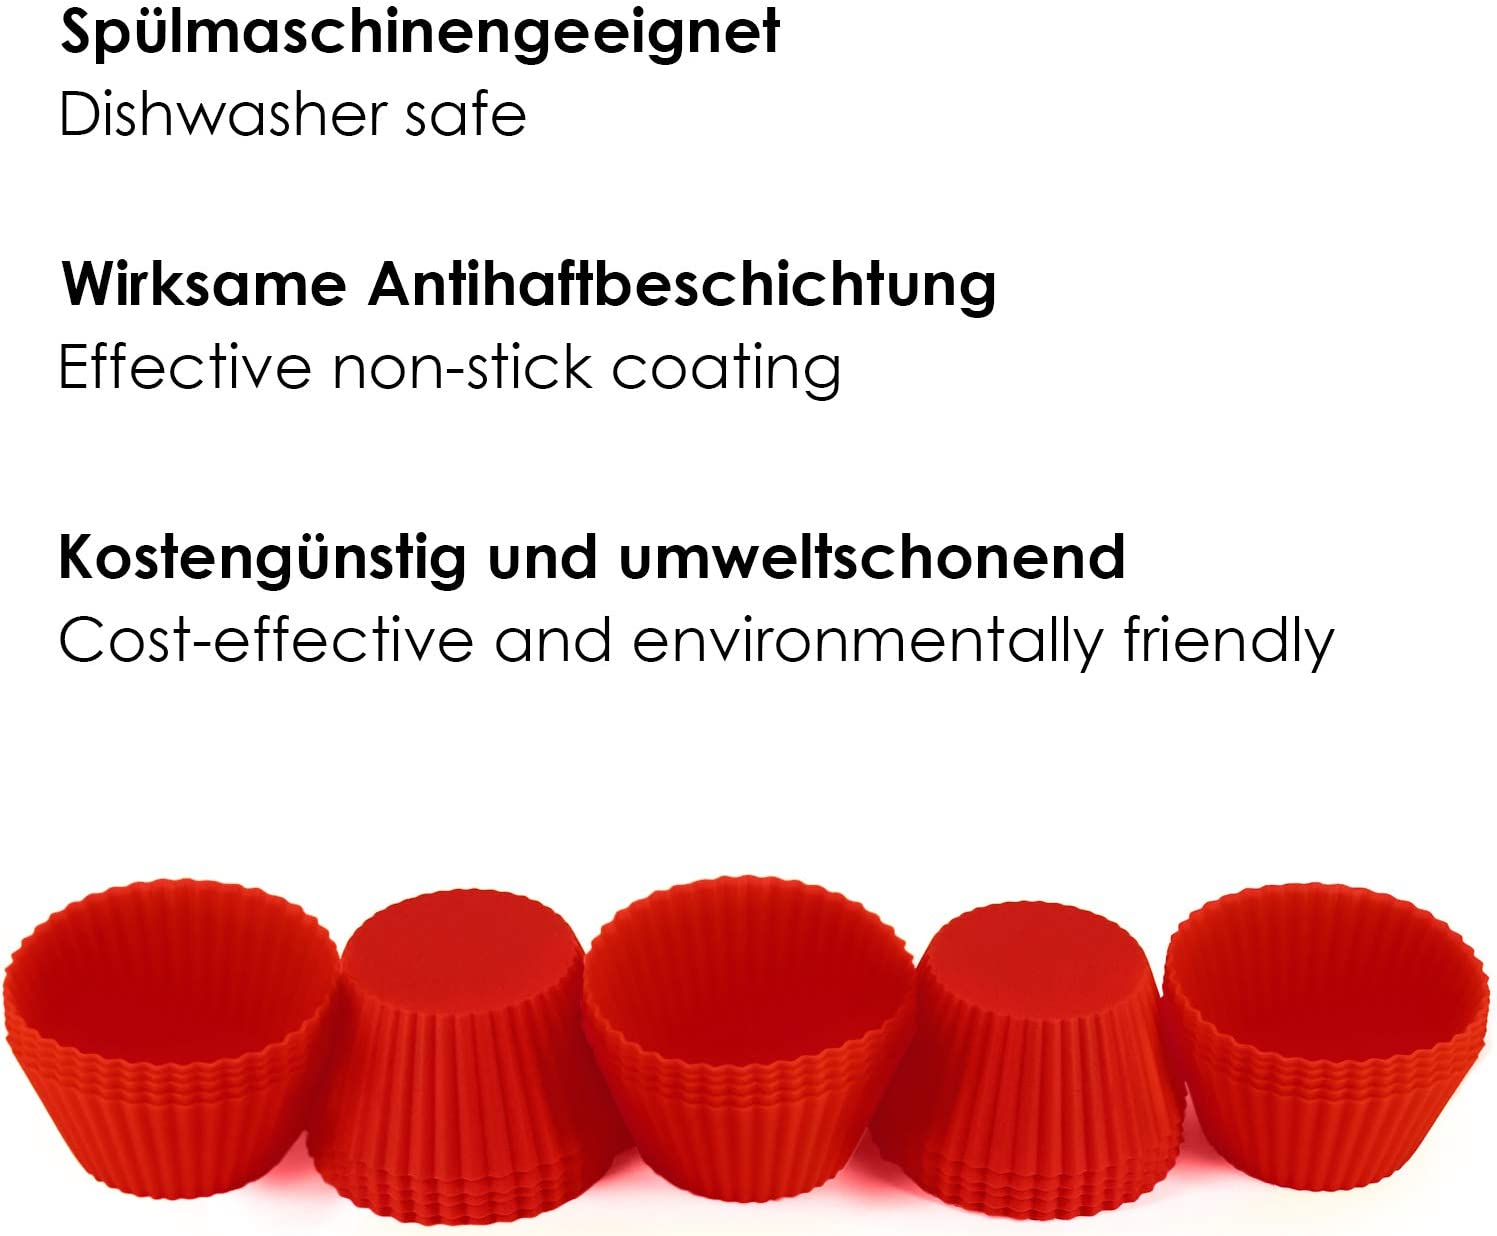 Cupcake Muffin Forms Reusable Environmentally Friendly BPA-Free Baking Forms Cupcake Forms GOURMEO/® 25 Muffin Forms Available in Blue high-Quality Silicone